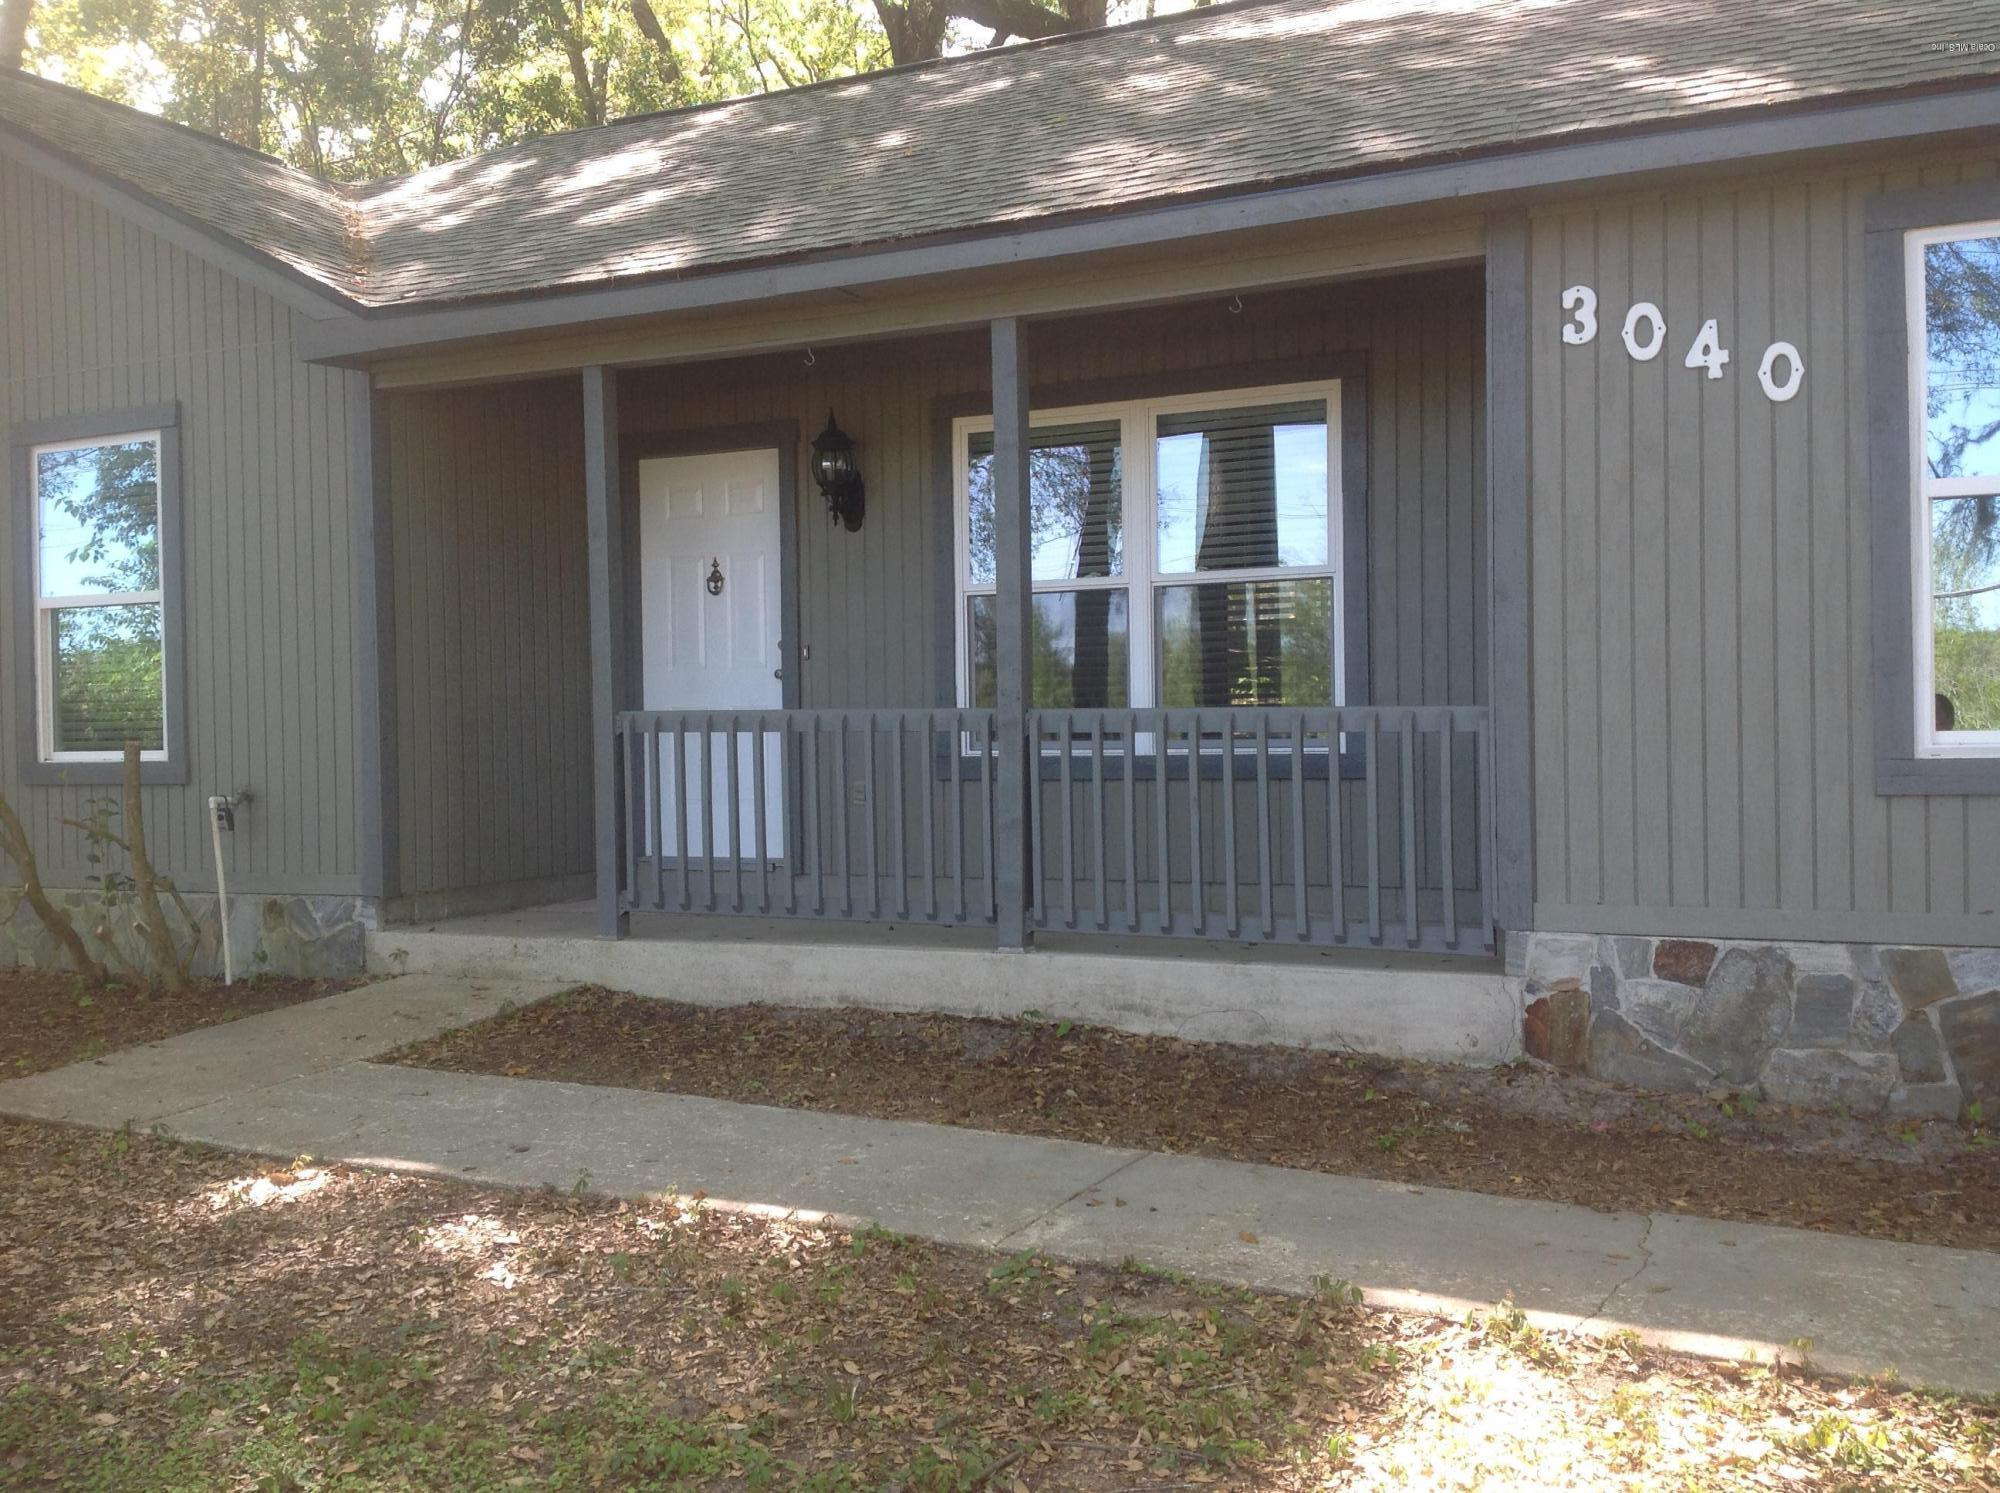 3040 NE 35TH STREET, OCALA, FL 34479